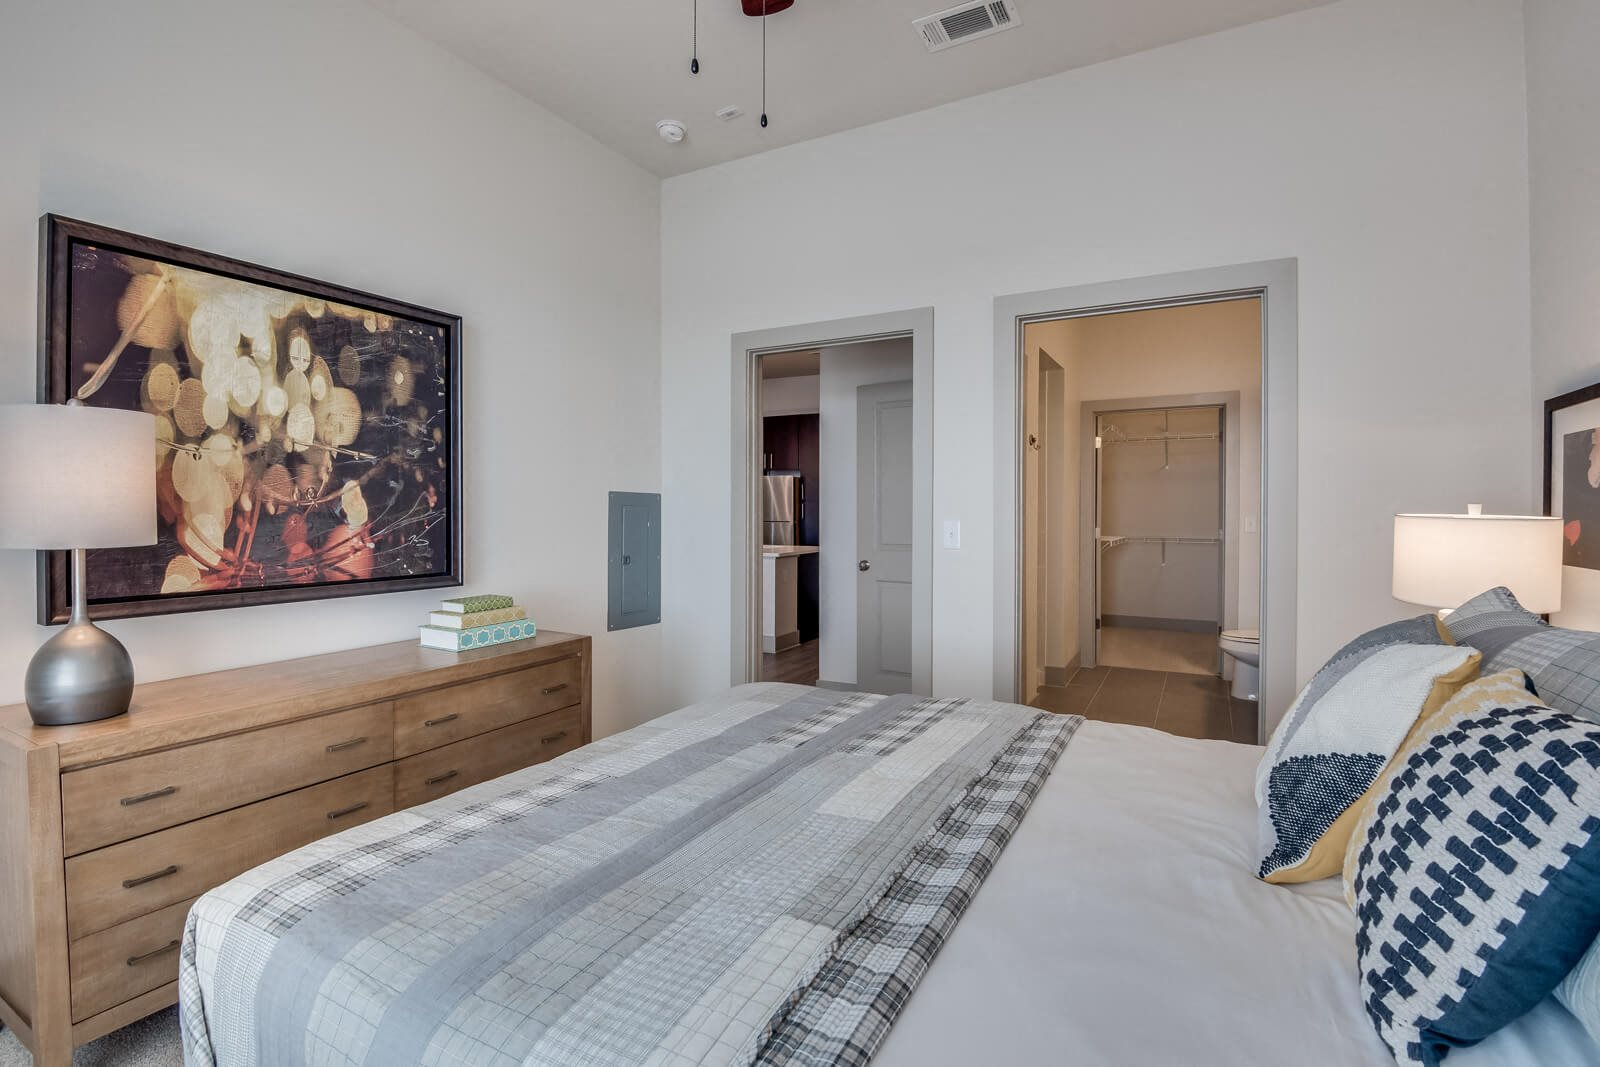 Master Bedroom With Attached Bathroom and Walk-In Closet at Windsor at West University, 2630 Bissonnet Street, Houston